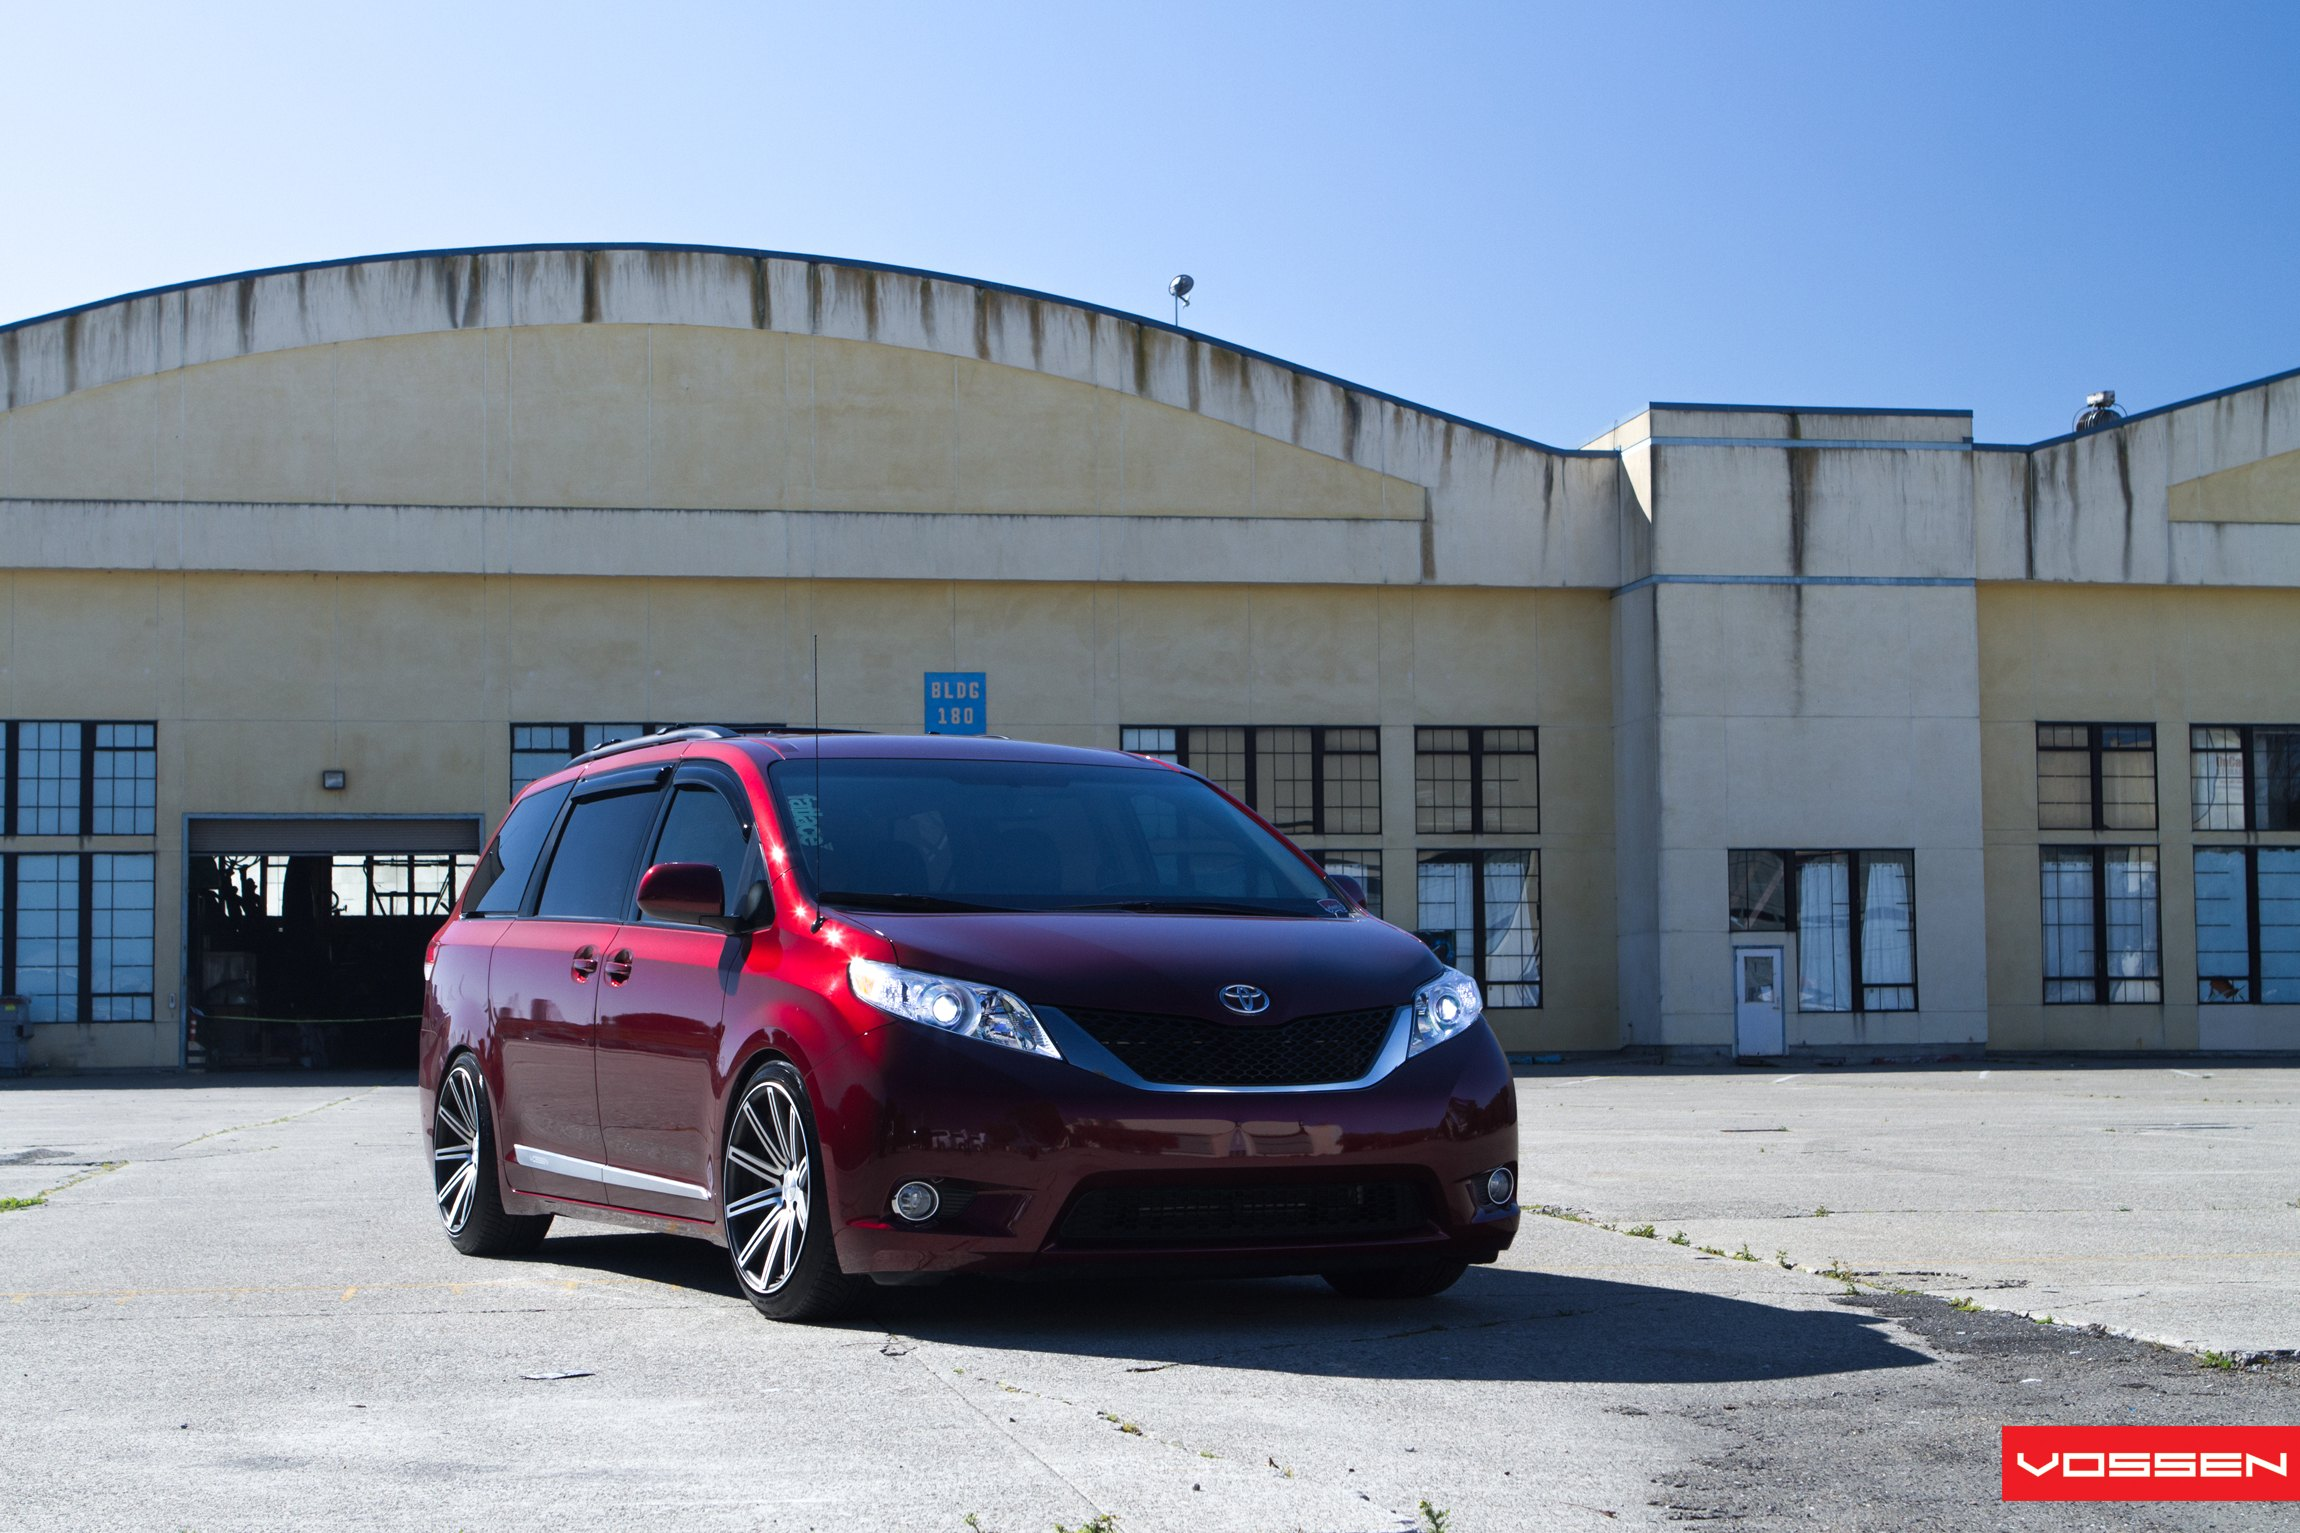 Hot Family Minivan Gets Air Suspension And Classy Vossen Rims